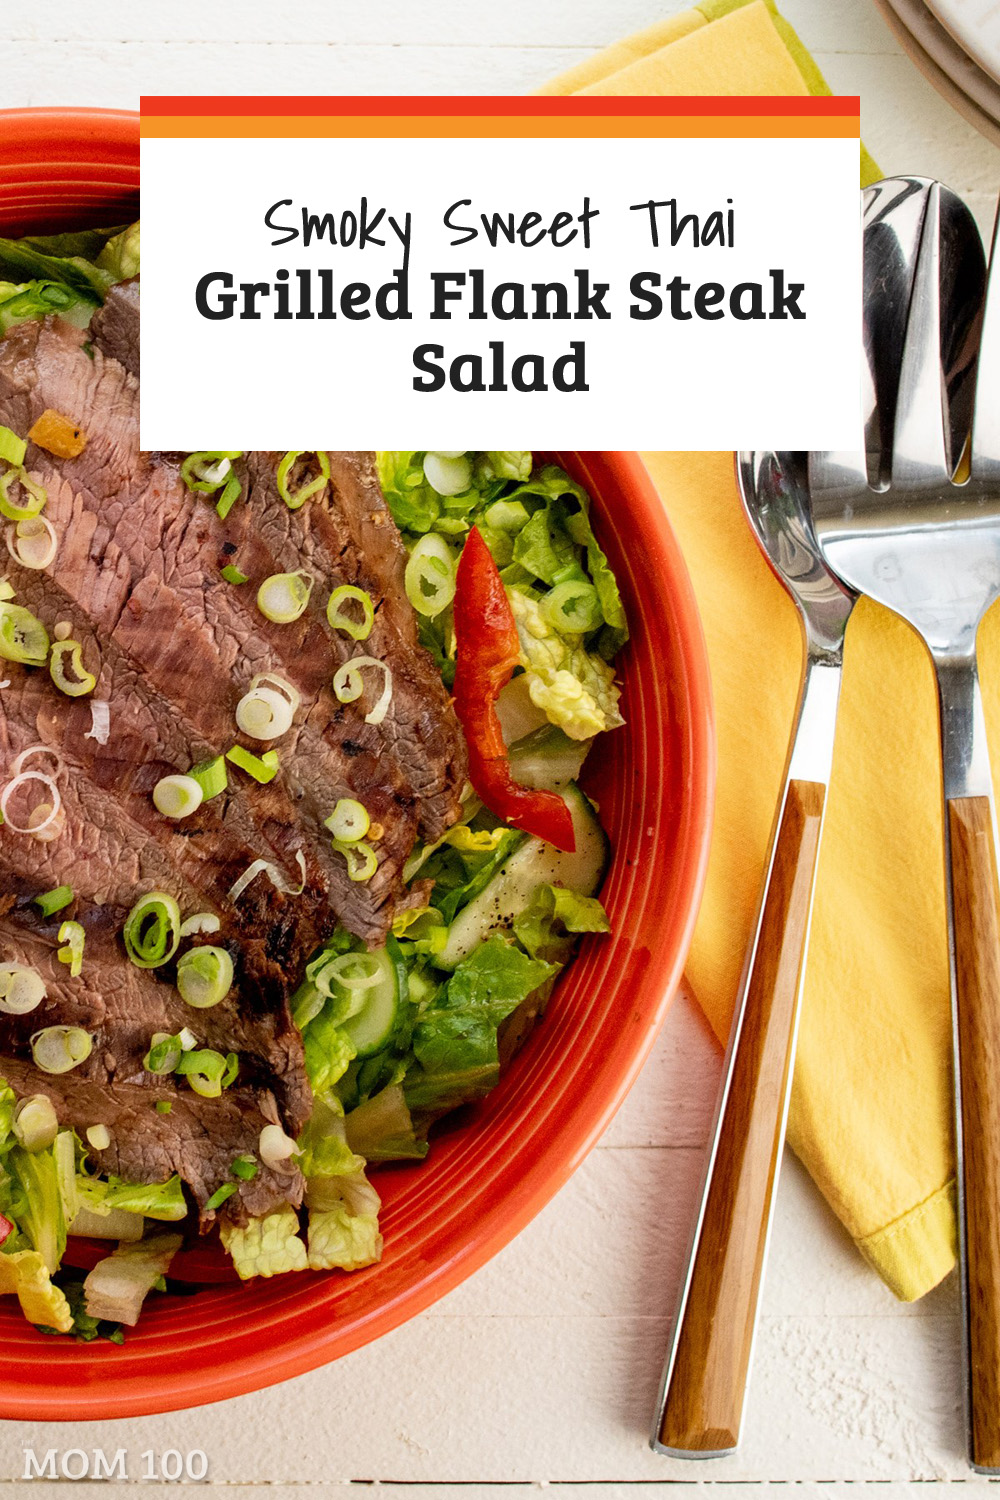 This Smoky Sweet Thai Grilled Flank Steak Salad is a beautiful dinner salad with flavors inspired by Thailand. A fresh new take on steak.